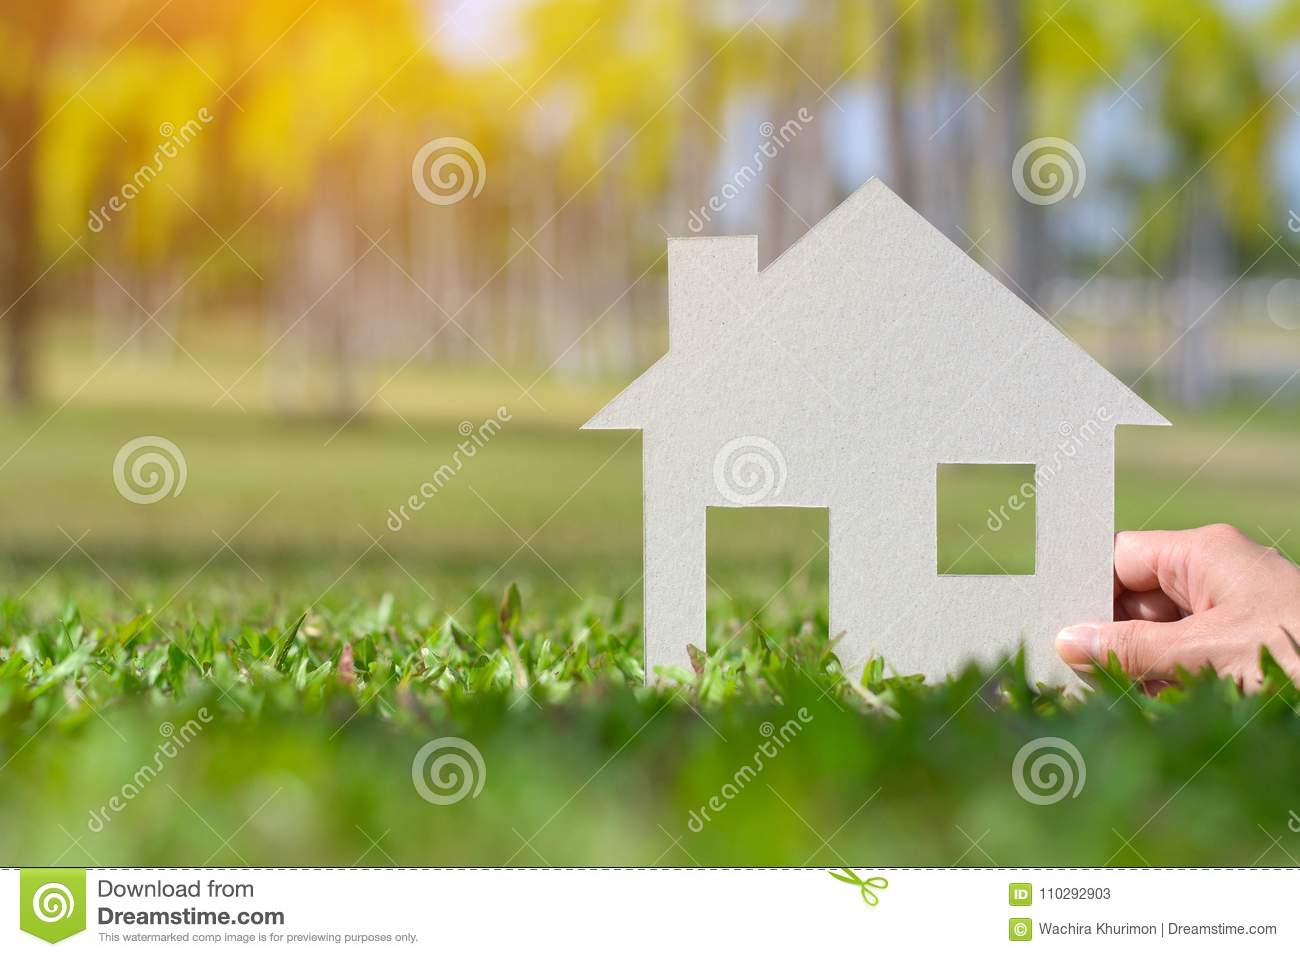 Paper cut of house on nature background copy space